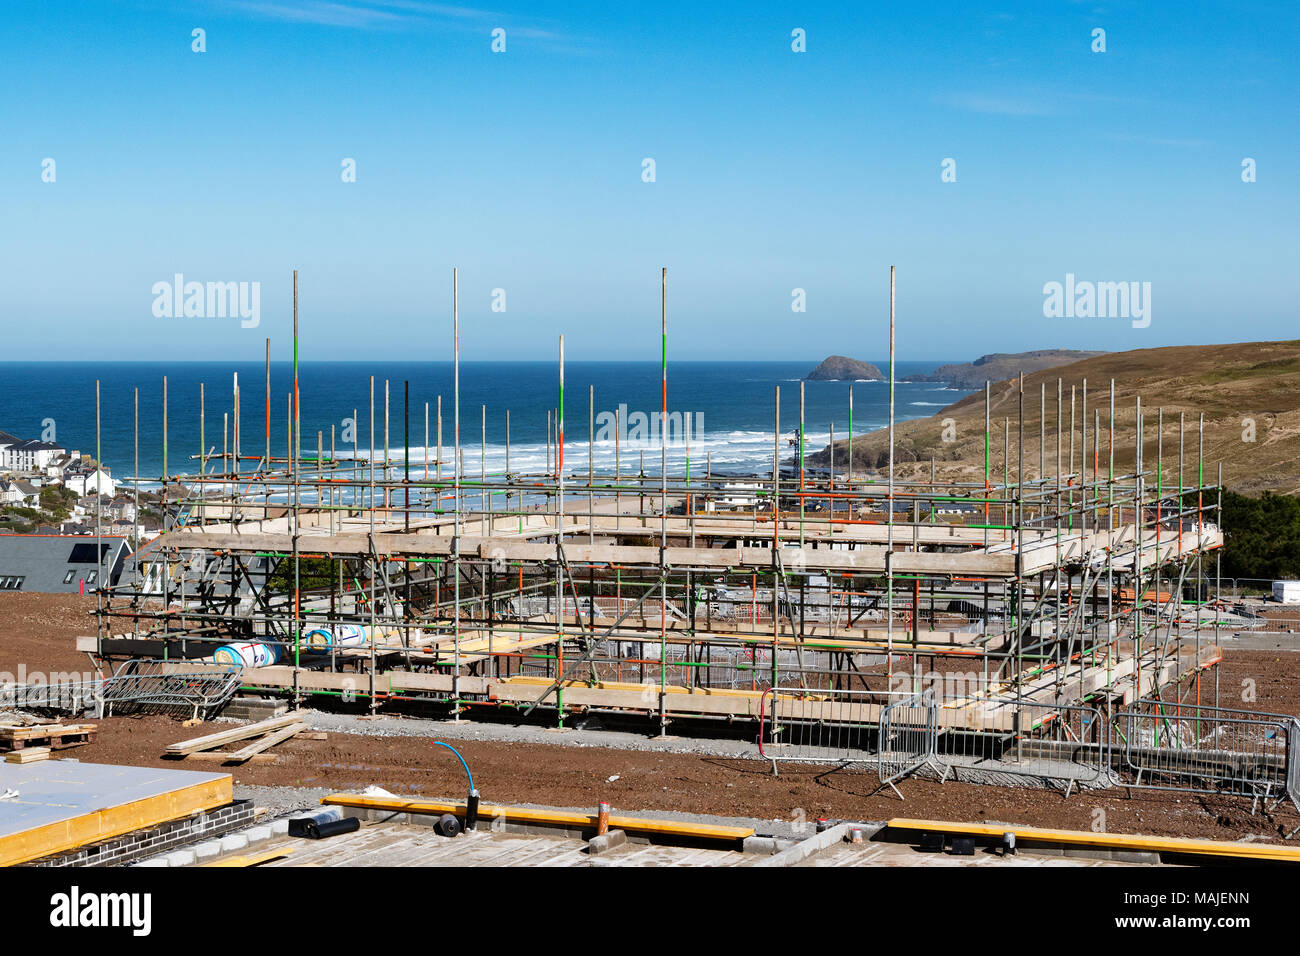 affordable housing project being built on a greenfield site in perranporth, cornwall, england, uk. - Stock Image